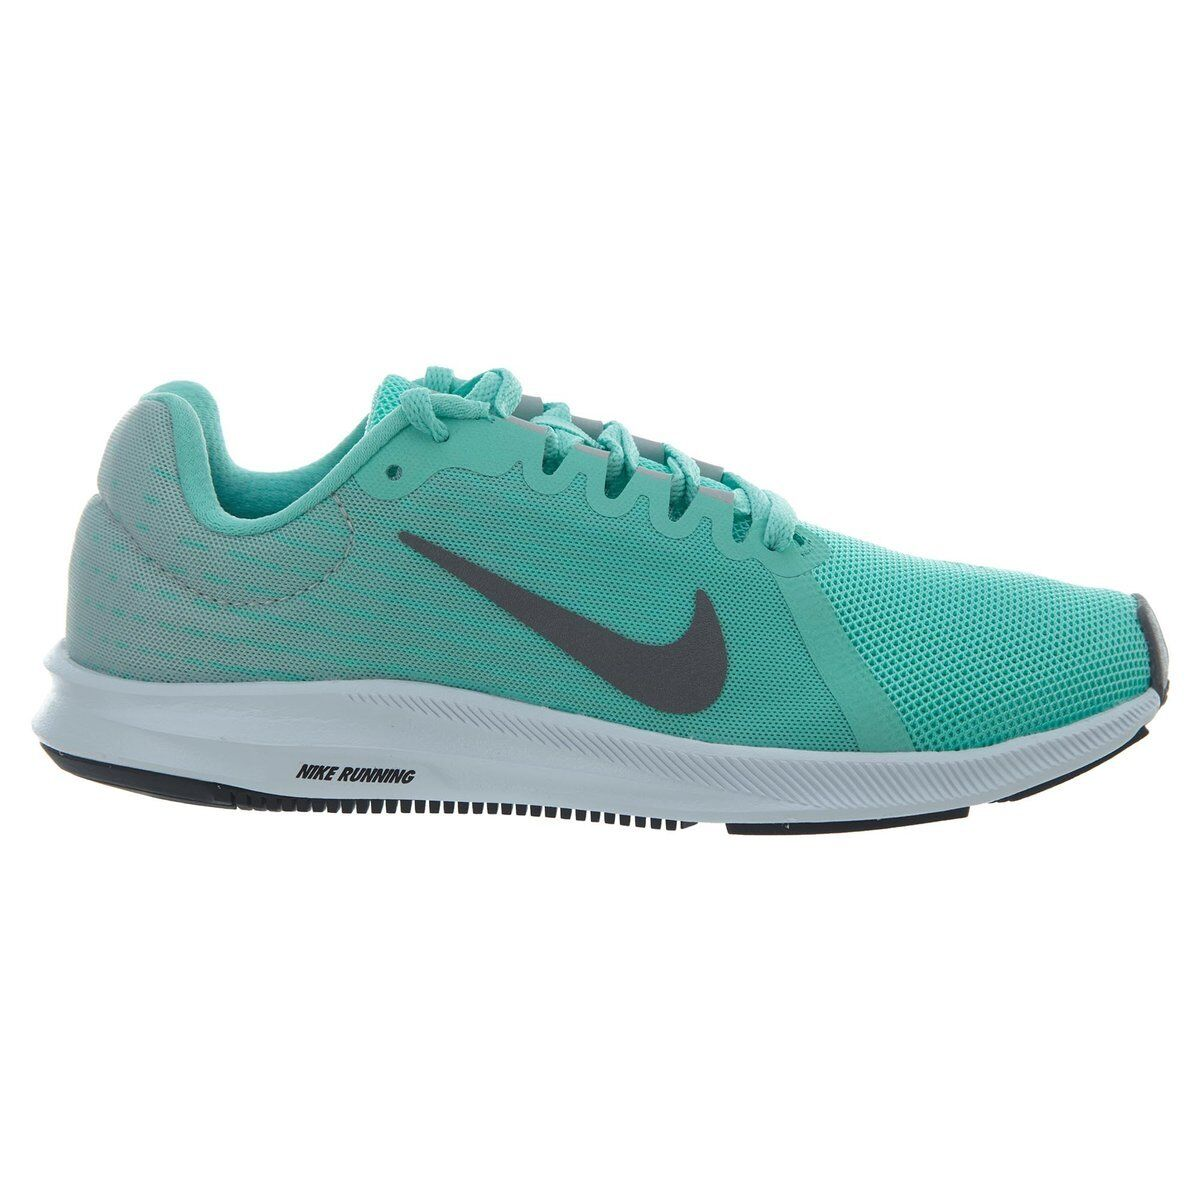 LATEST RELEASE Nike Downshifter 8 Womens Running shoes (B) (300)